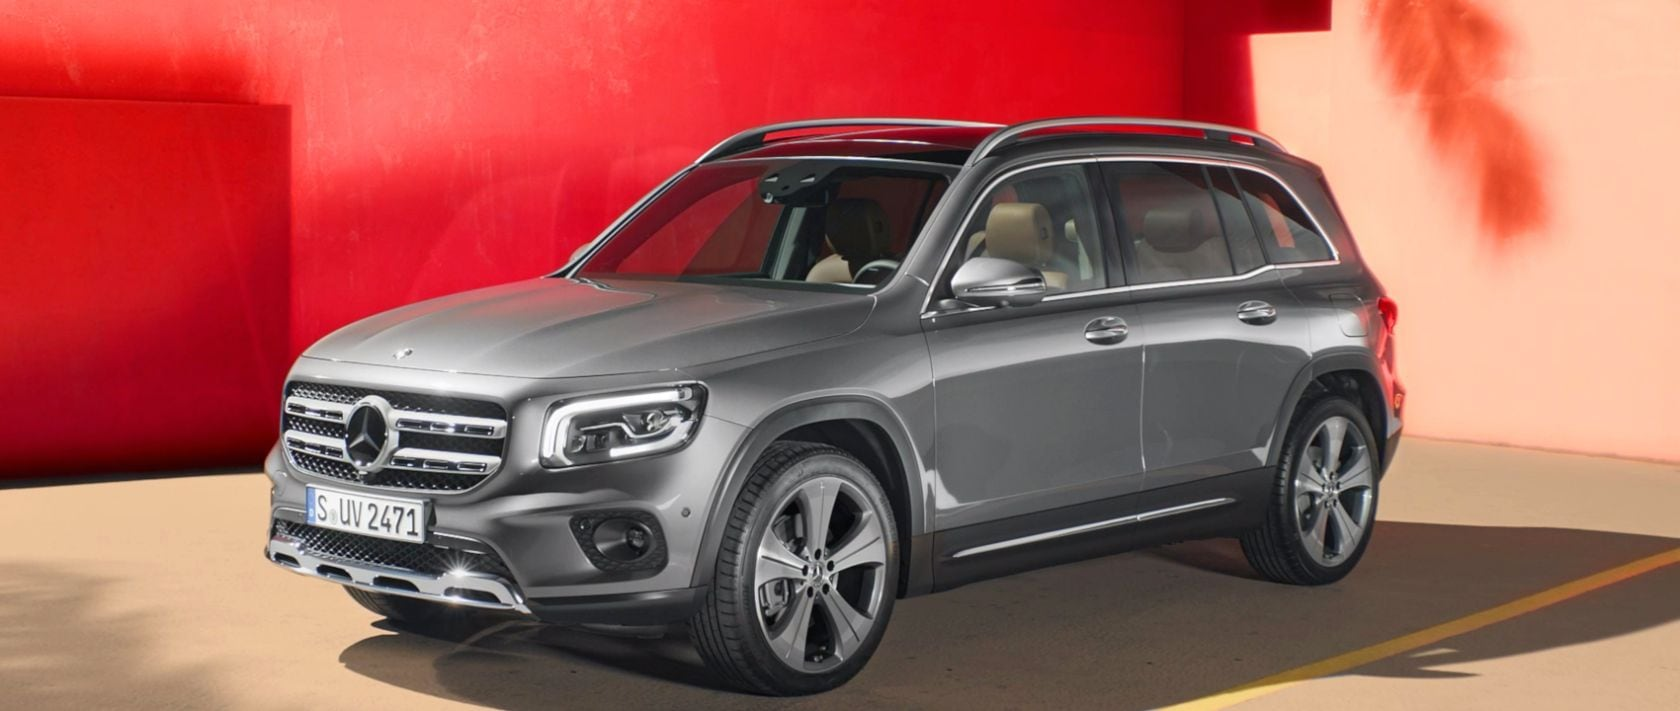 The new 2019 Mercedes-Benz GLB (X 247) in mojave silver.